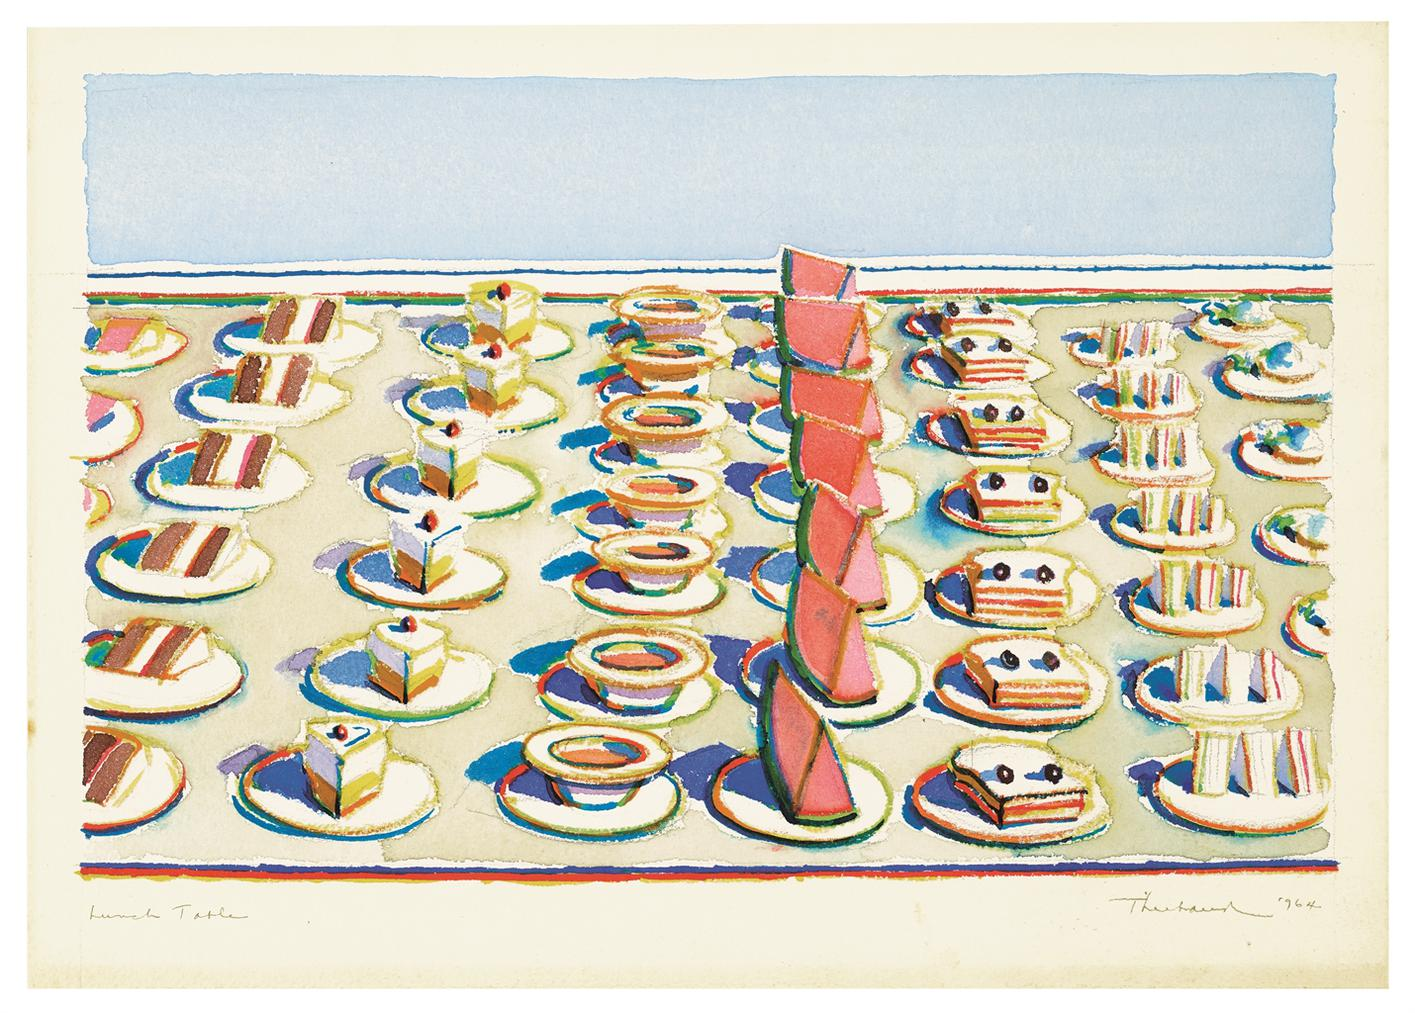 Wayne Thiebaud-Lunch Table-1964